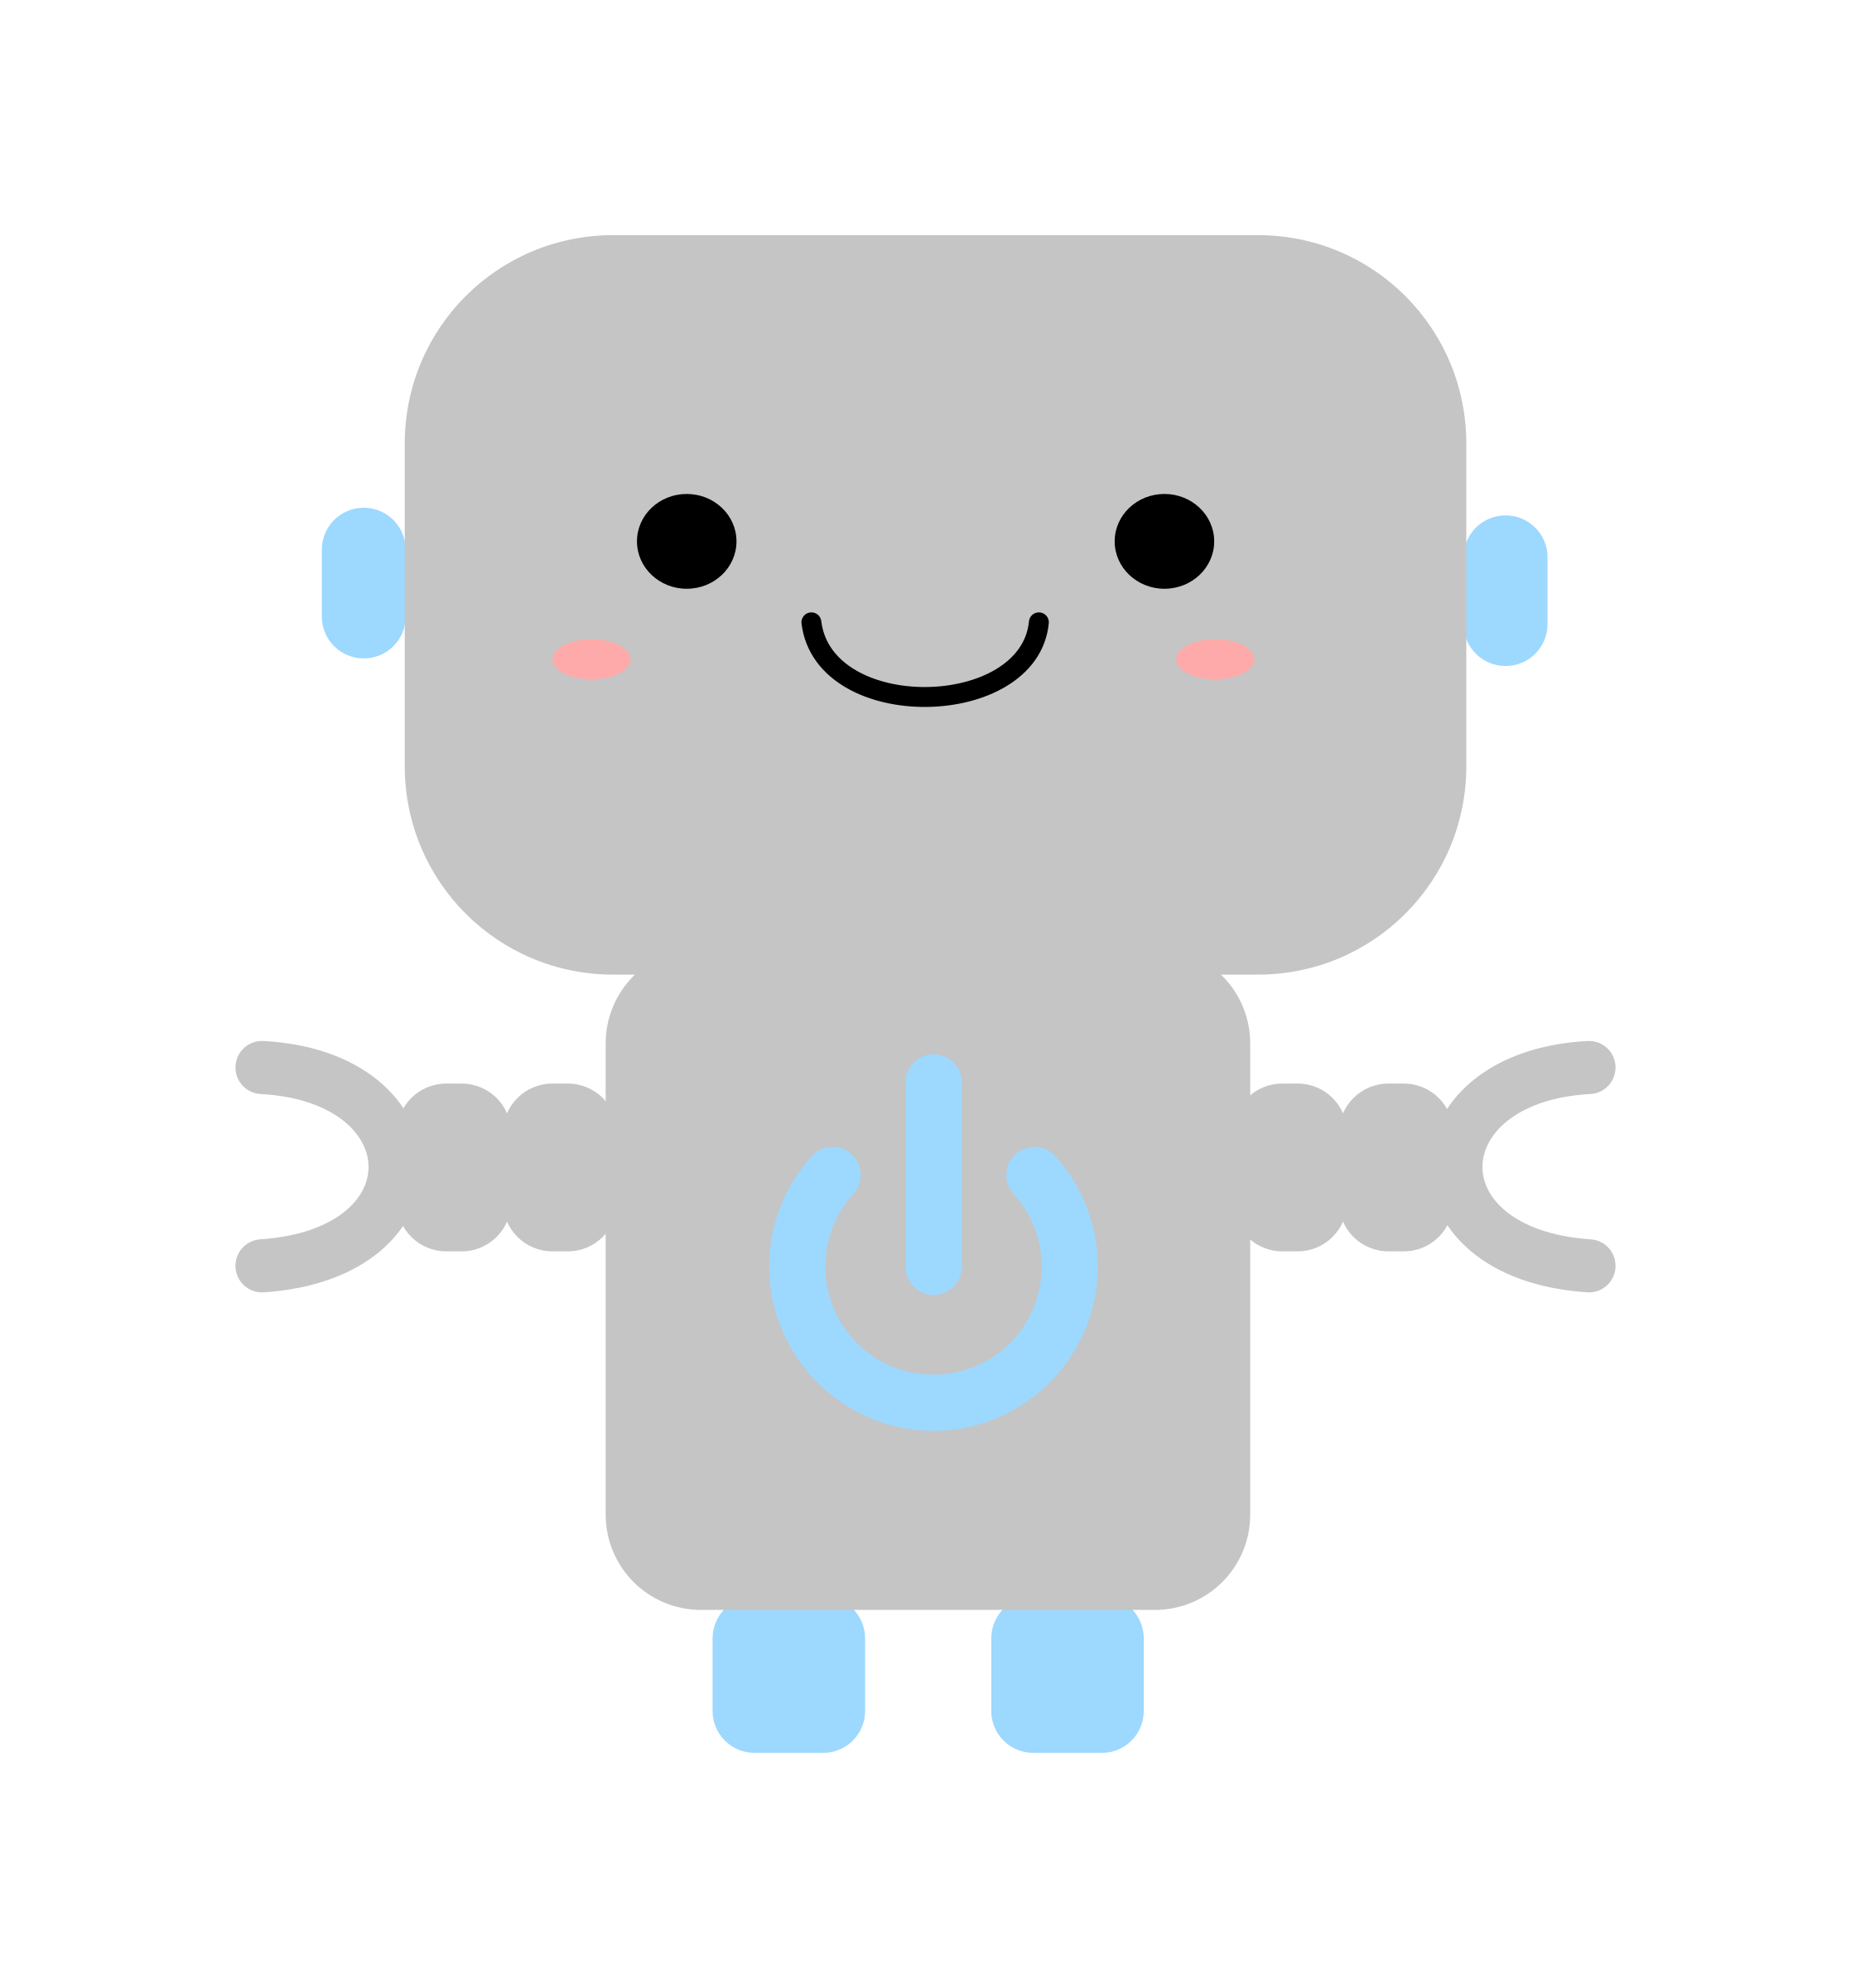 Robot clipart gray Kawaii Robot Symbol Power Robot